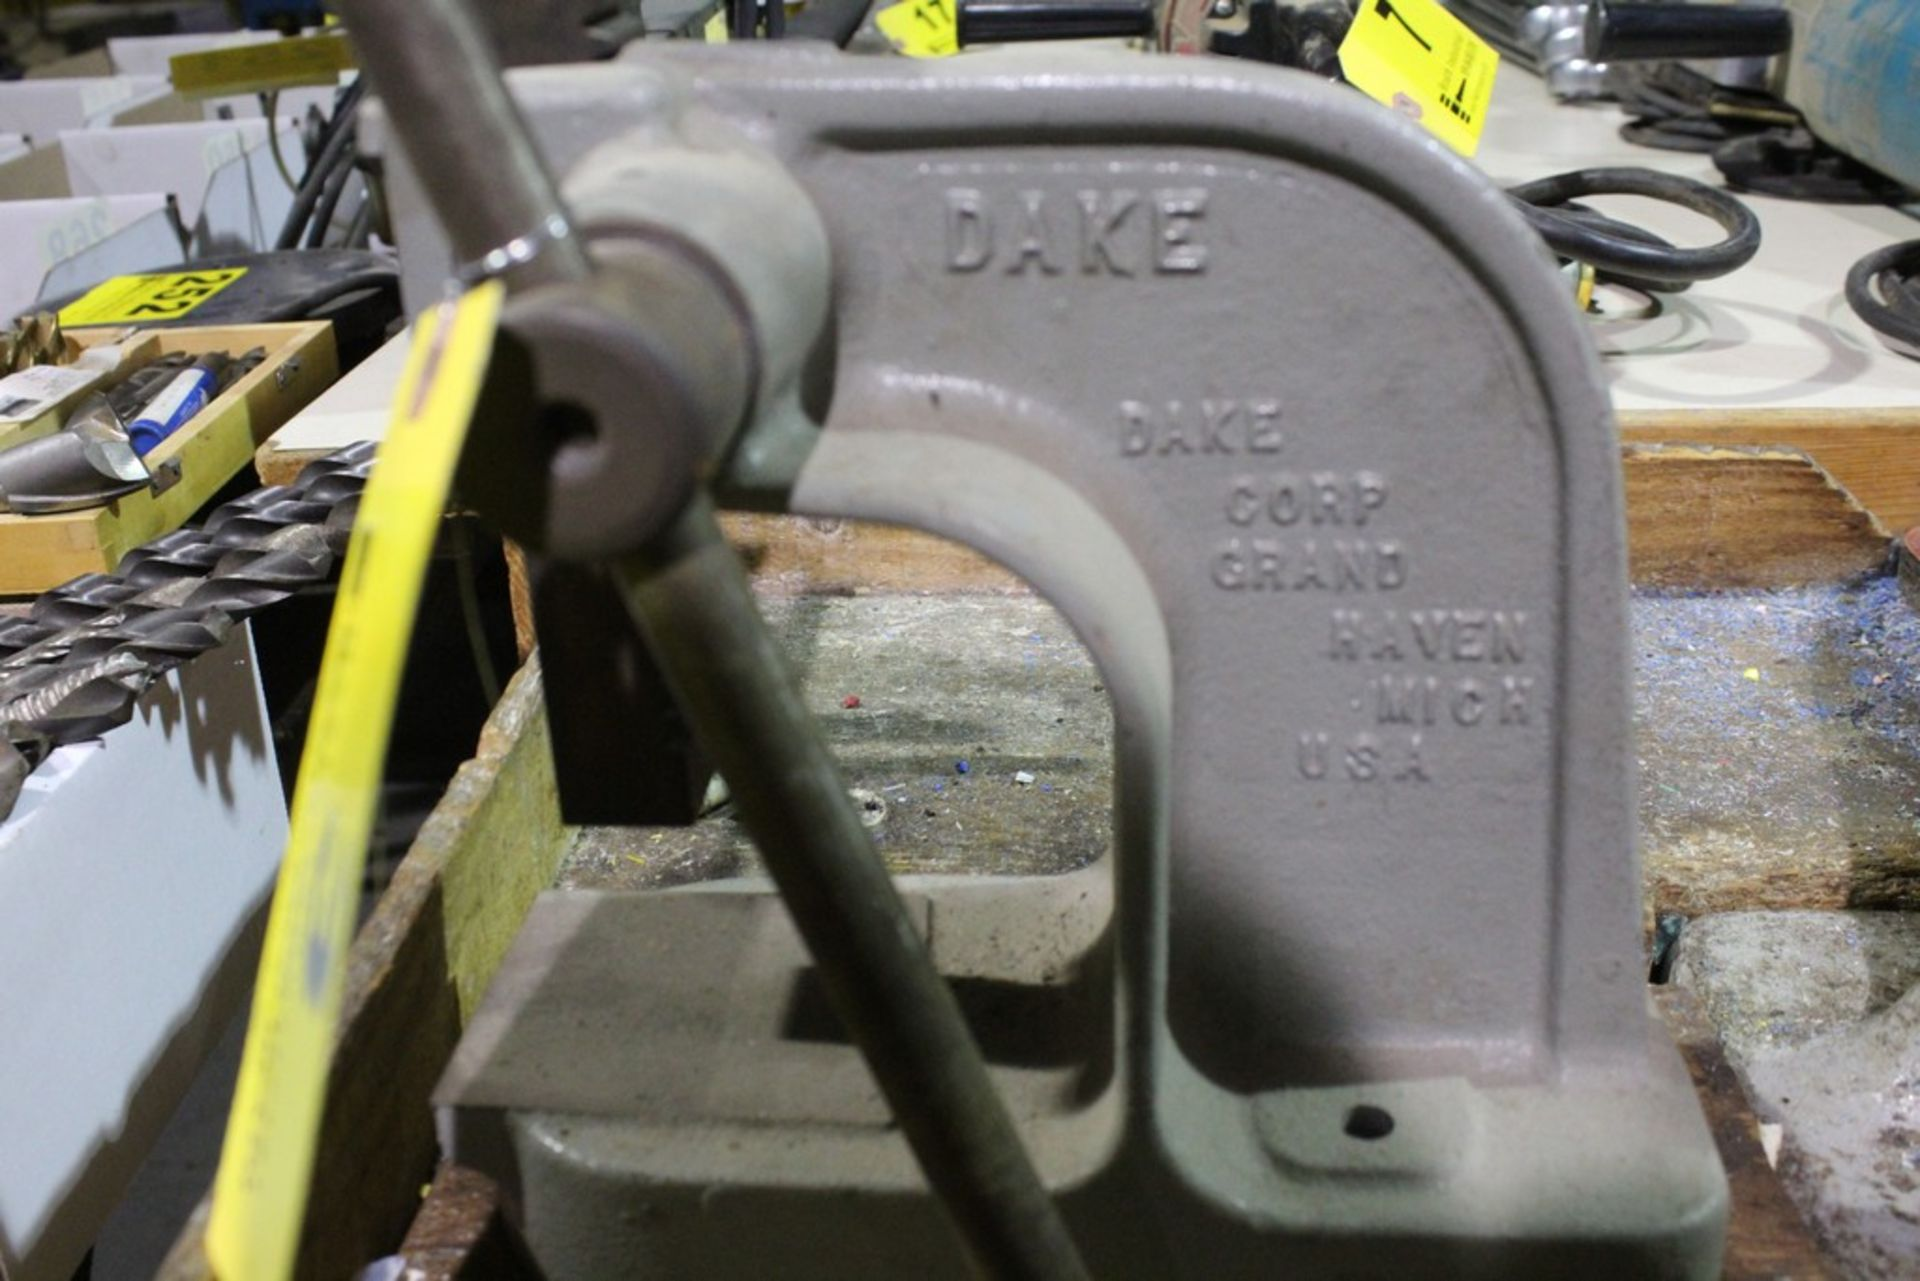 Lot 3 - DAKE MODEL X BENCHTOP ARBOR PRESS